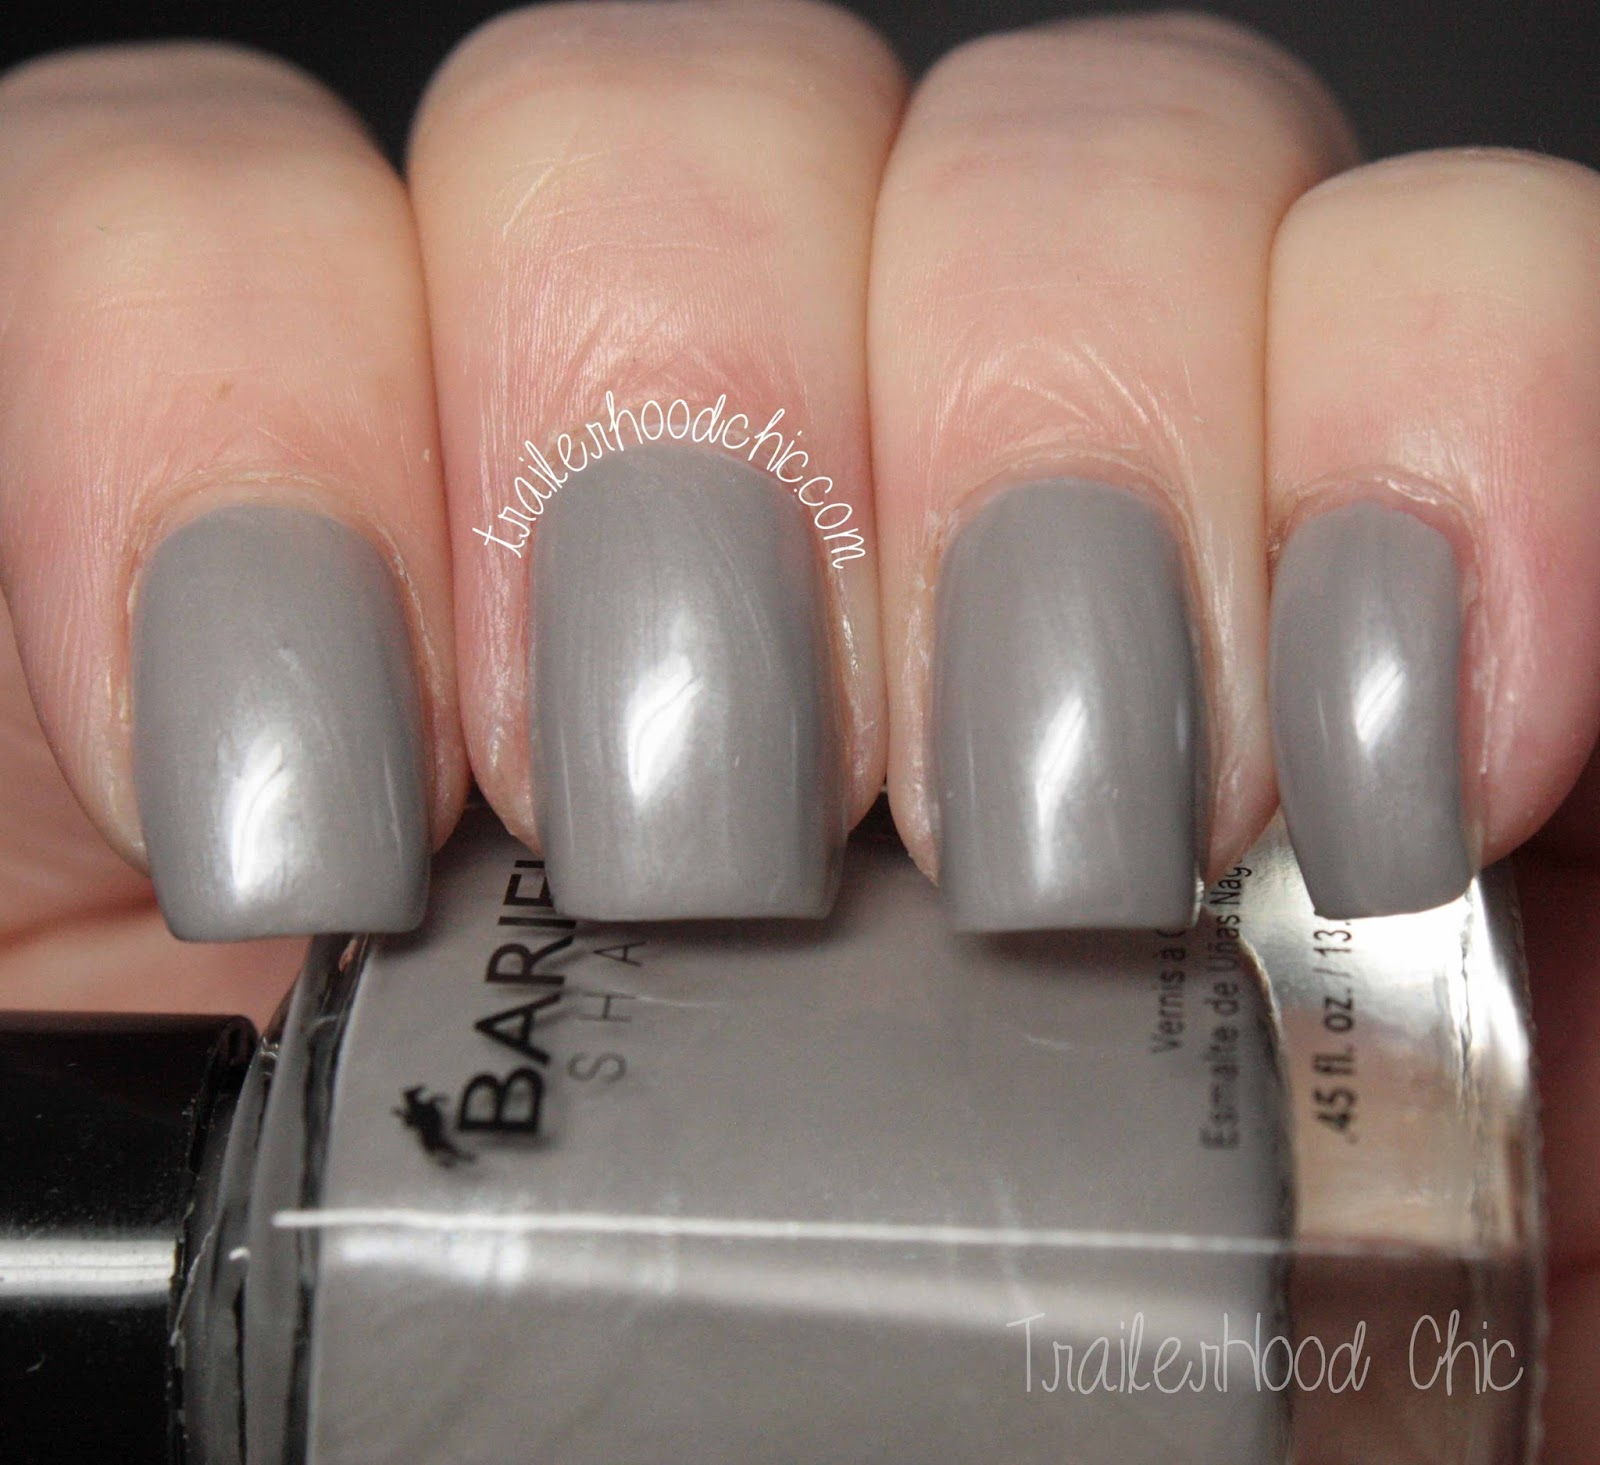 barielle gentle breeze swatches gray sky